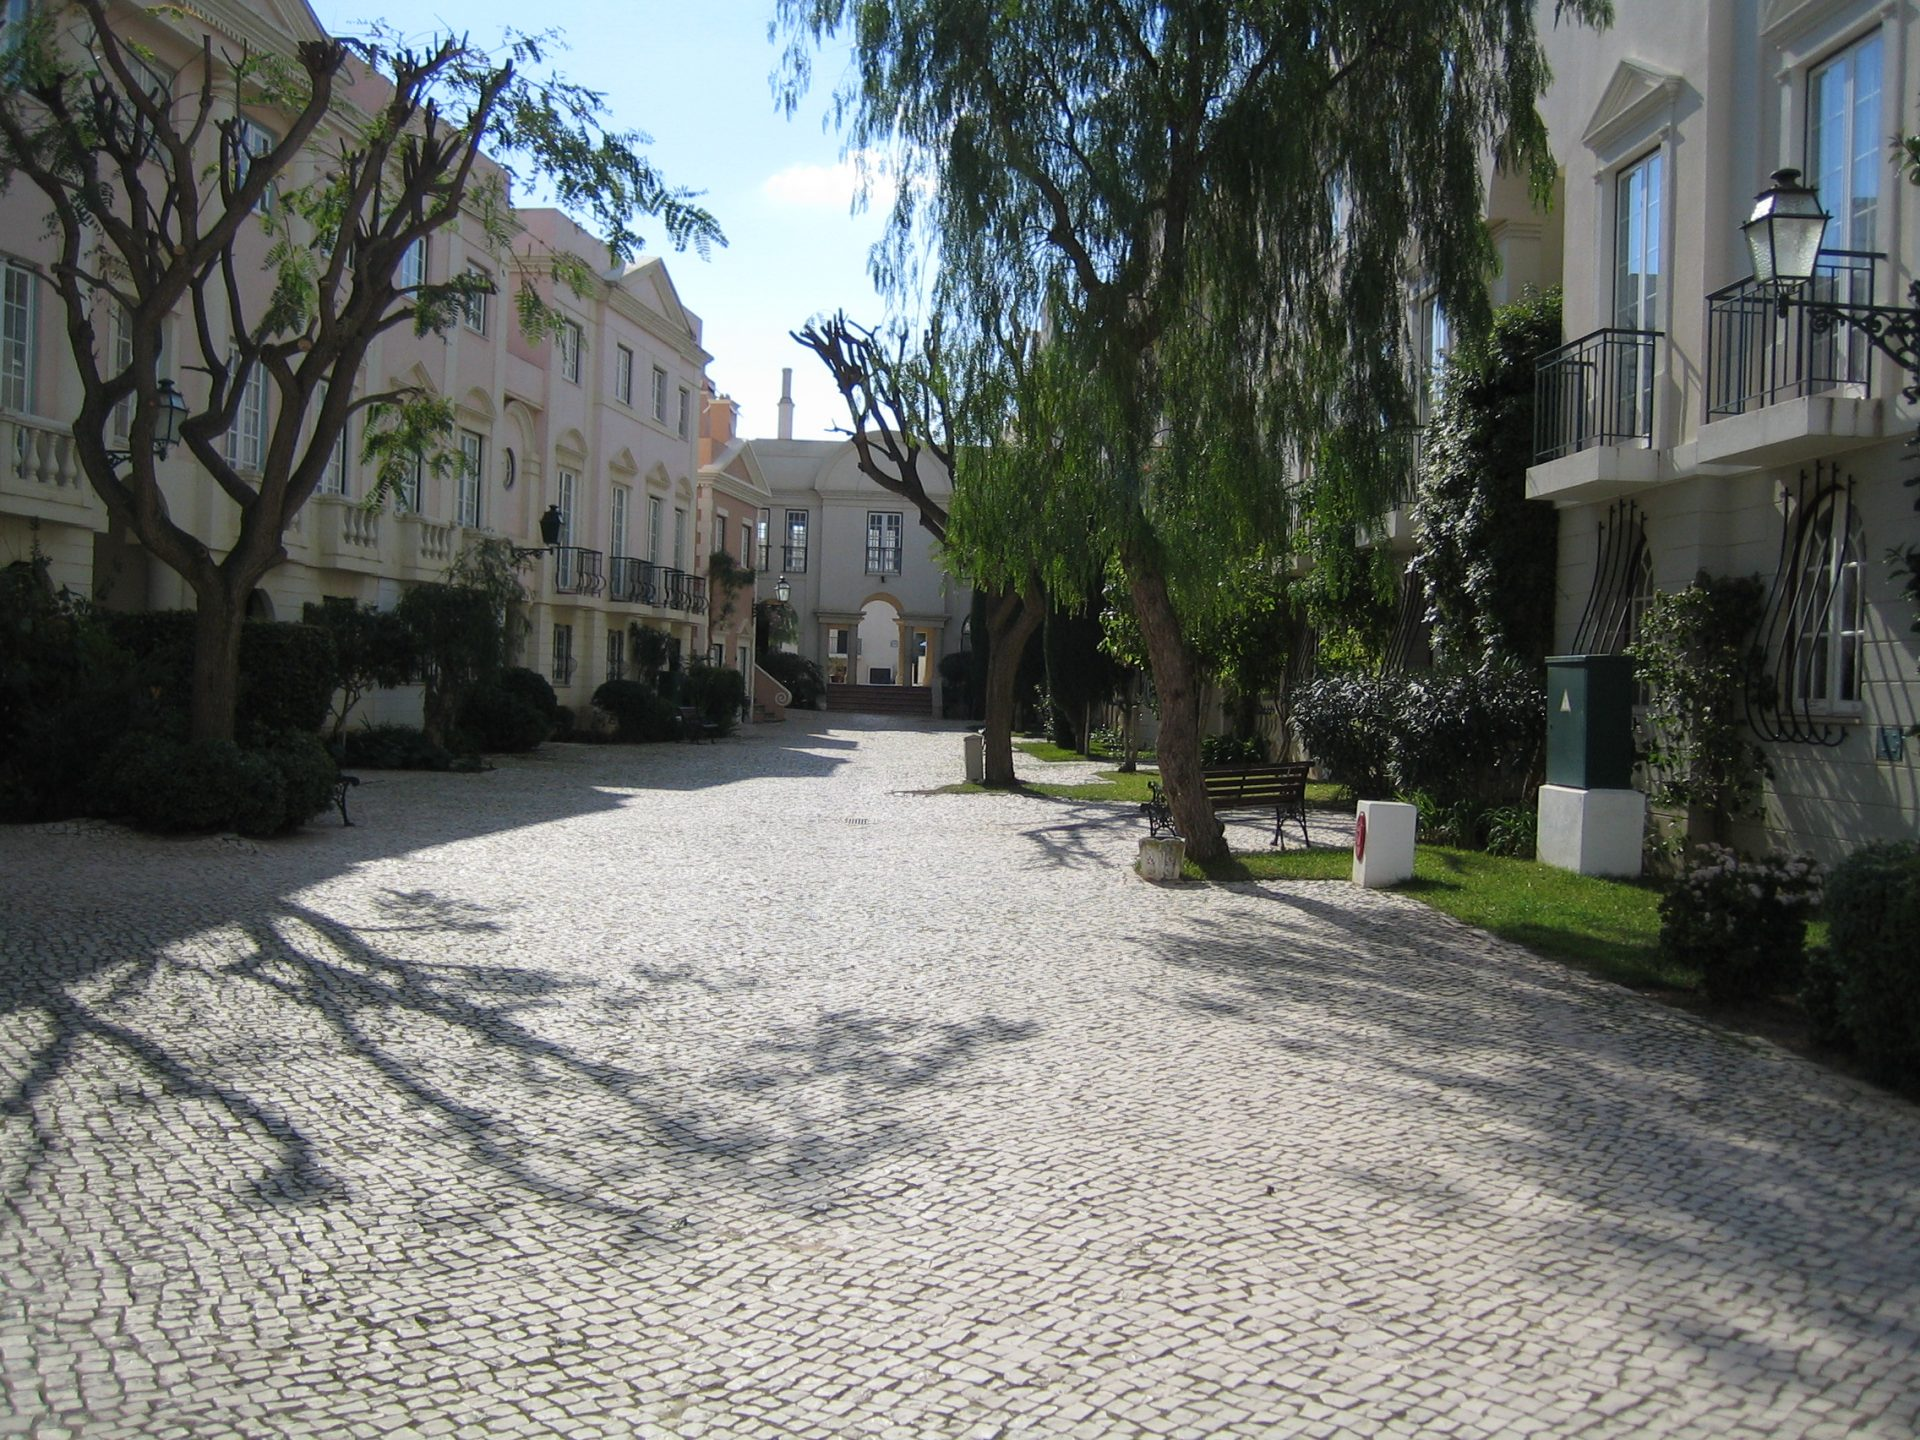 3 Bed Apartment Old Village Vilamoura Portugal Owners